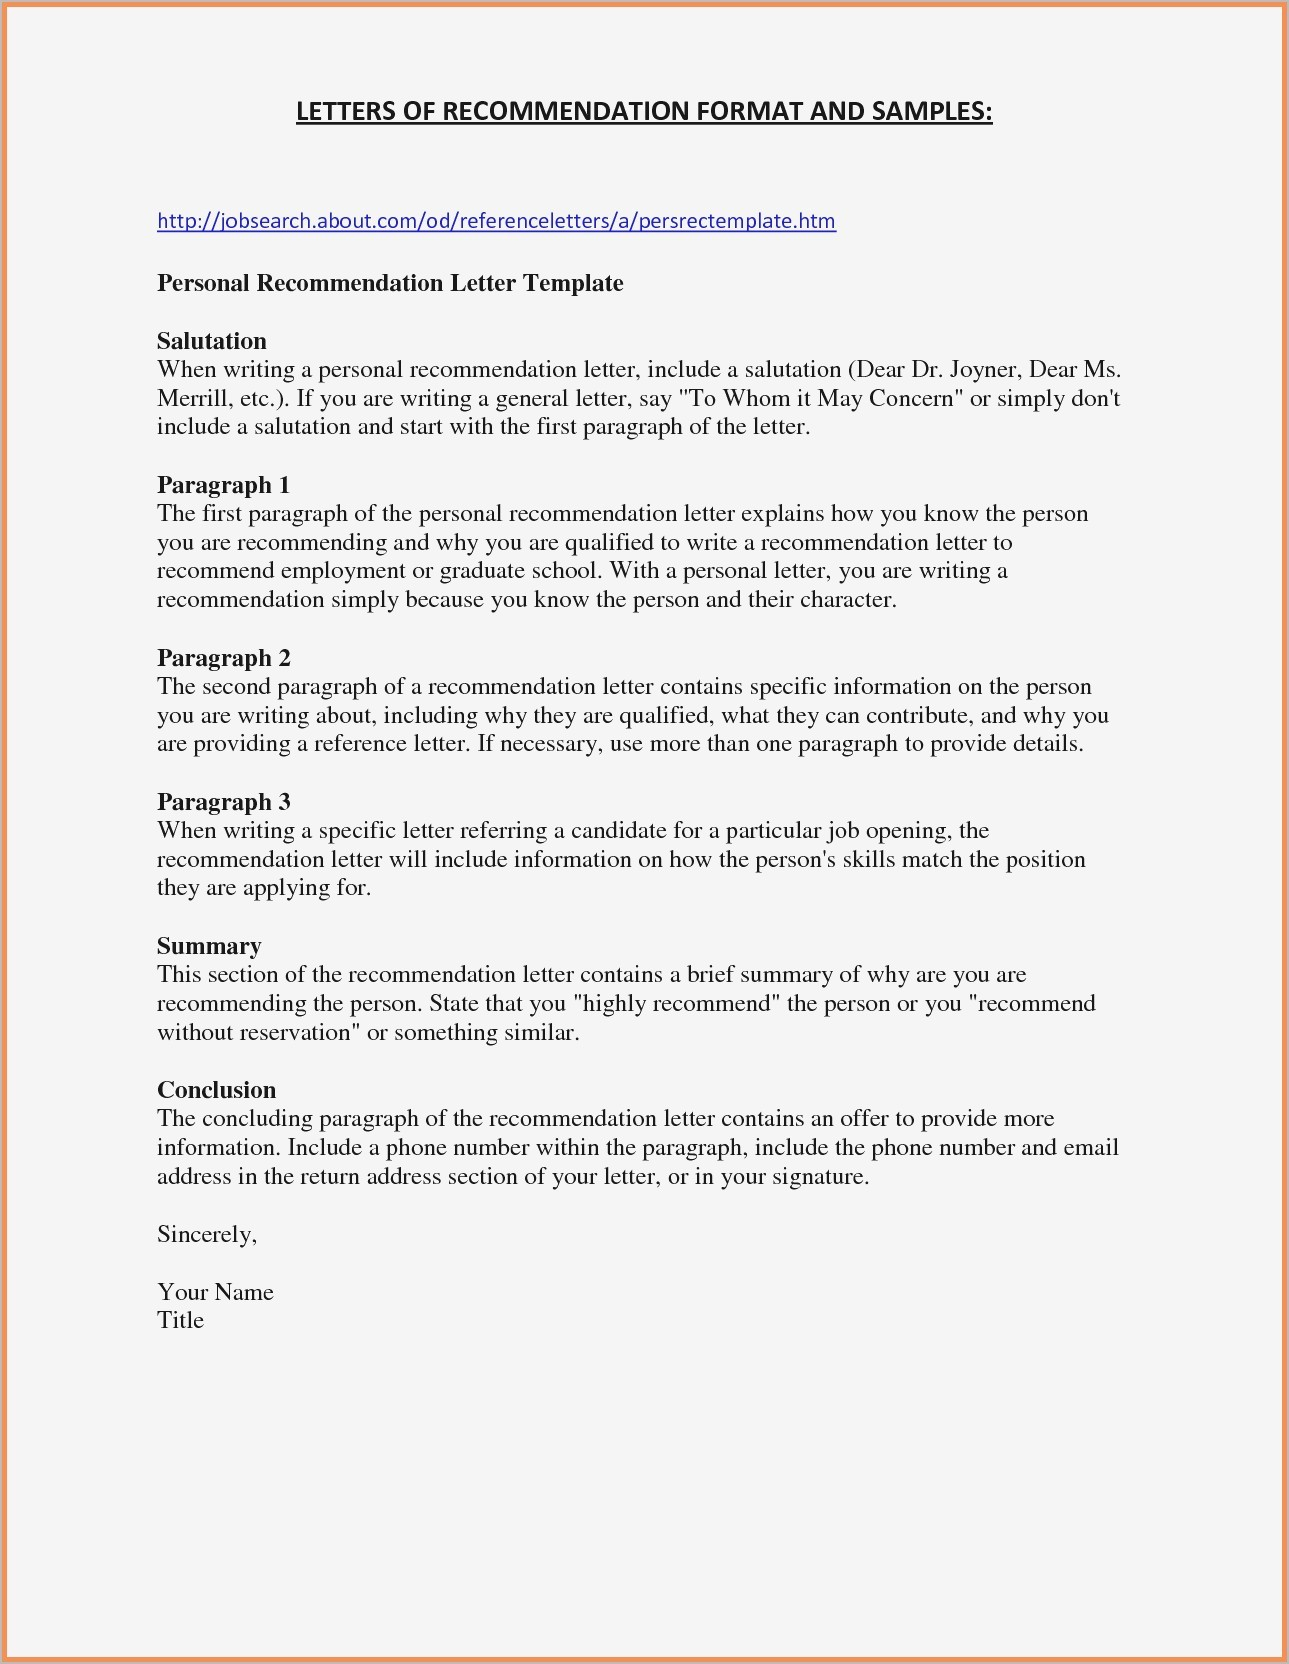 Nursing Letter Of Recommendation Template - Letter Re Mendation for Nurse Leader New Writing A Letter Re